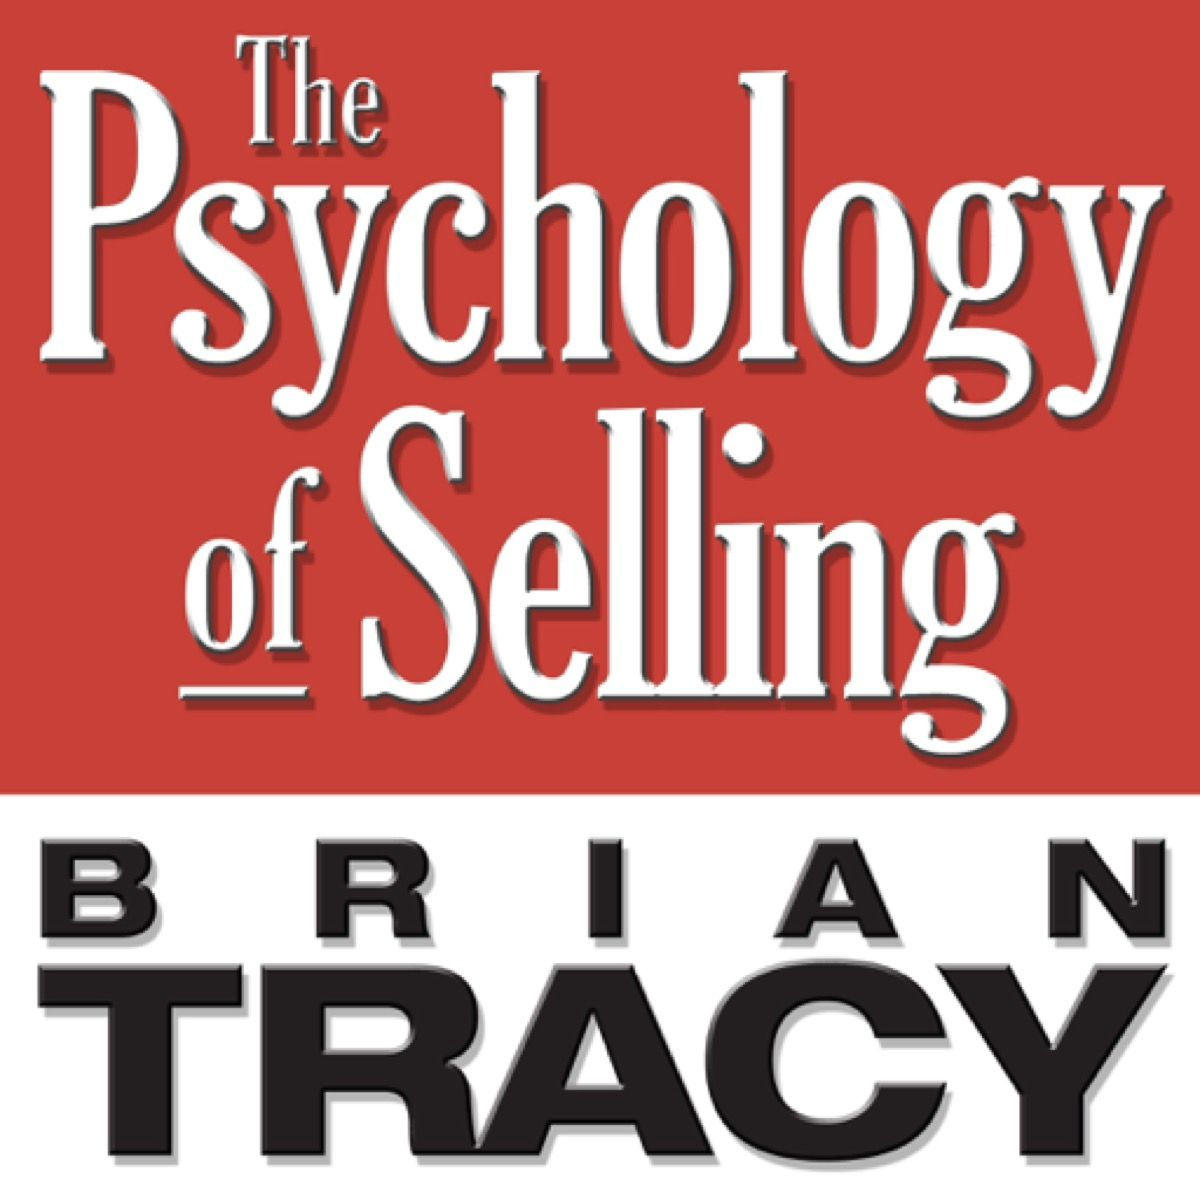 The Psychology Of Selling Increase Your Sales Faster And Easier Than You Ever Thought Possible 75 Off 4 99 Discover Great Deals On Fantastic Apps T Audio Books Audio Books Free Psychology